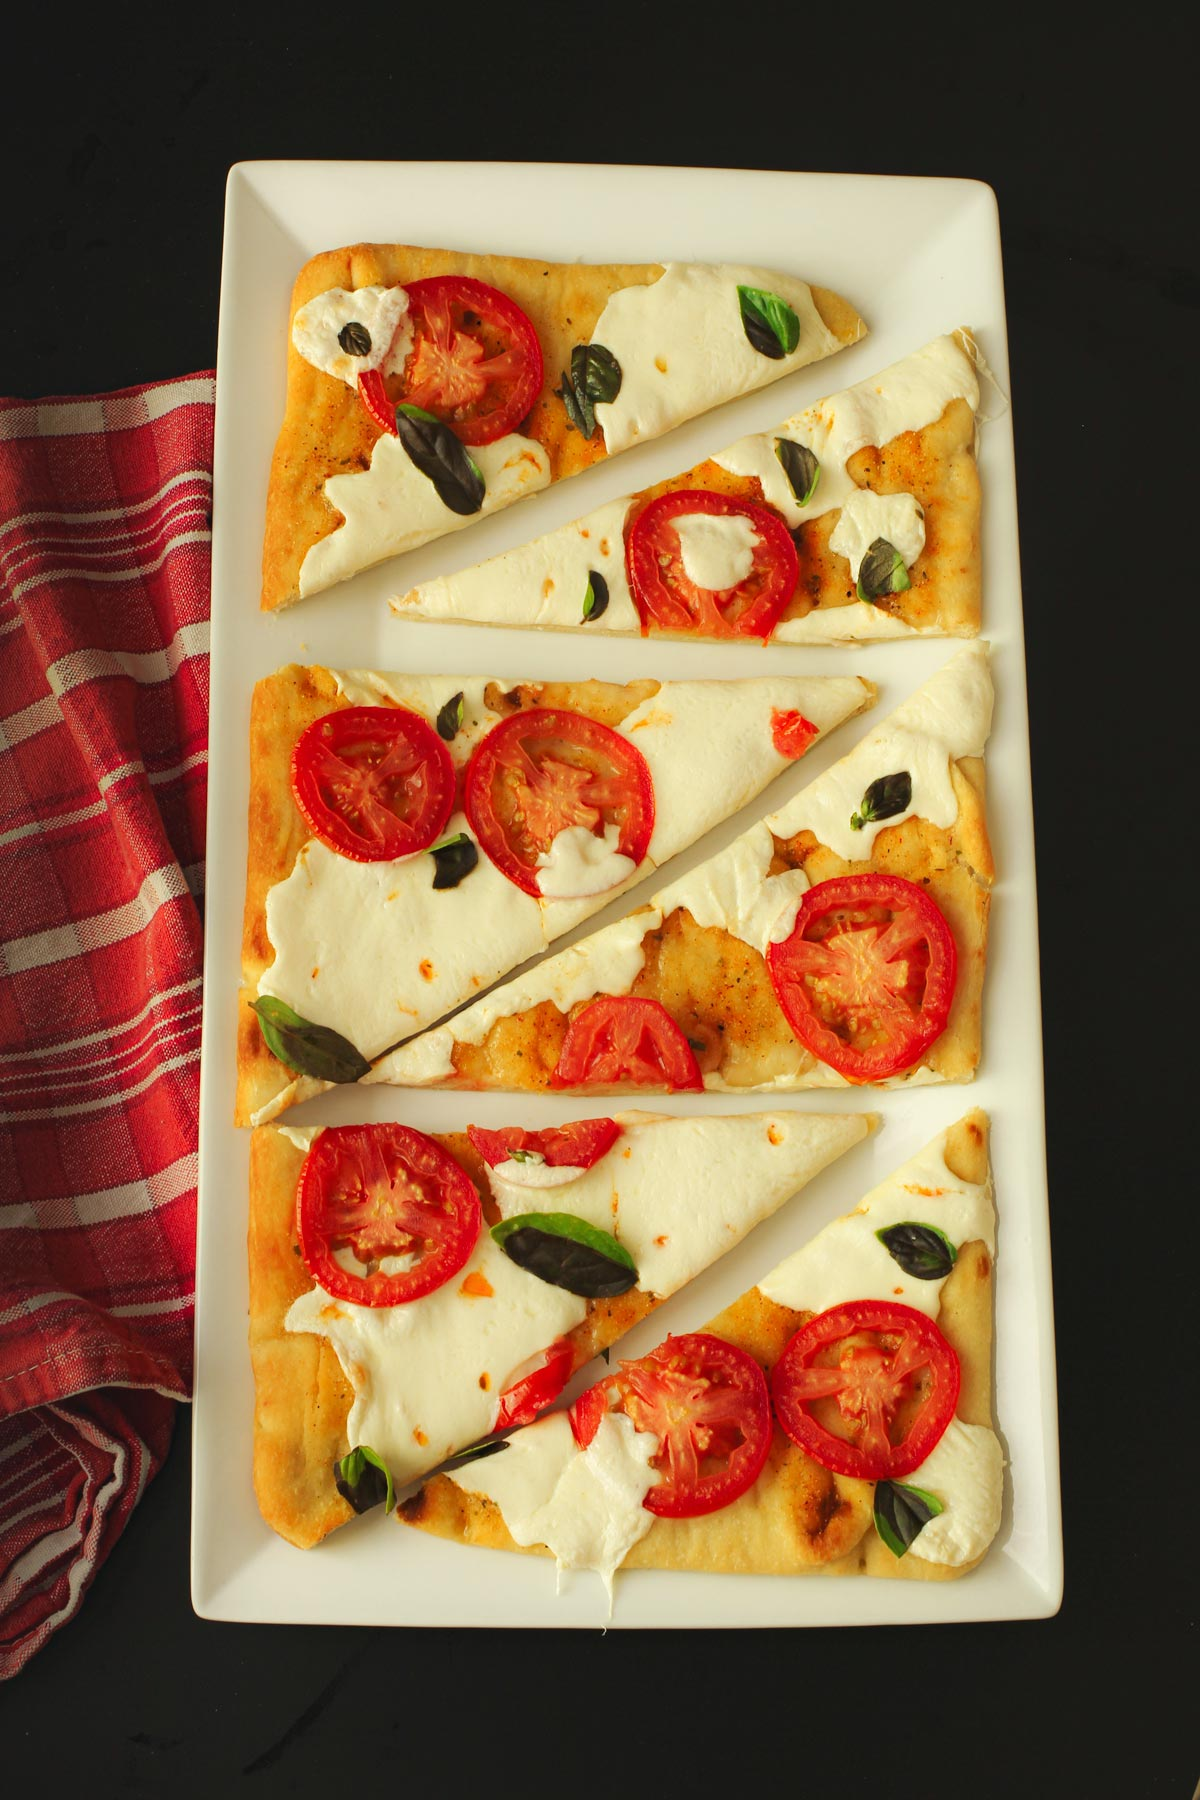 margherita flatbread pizza cut into wedges on white tray with red cloth.